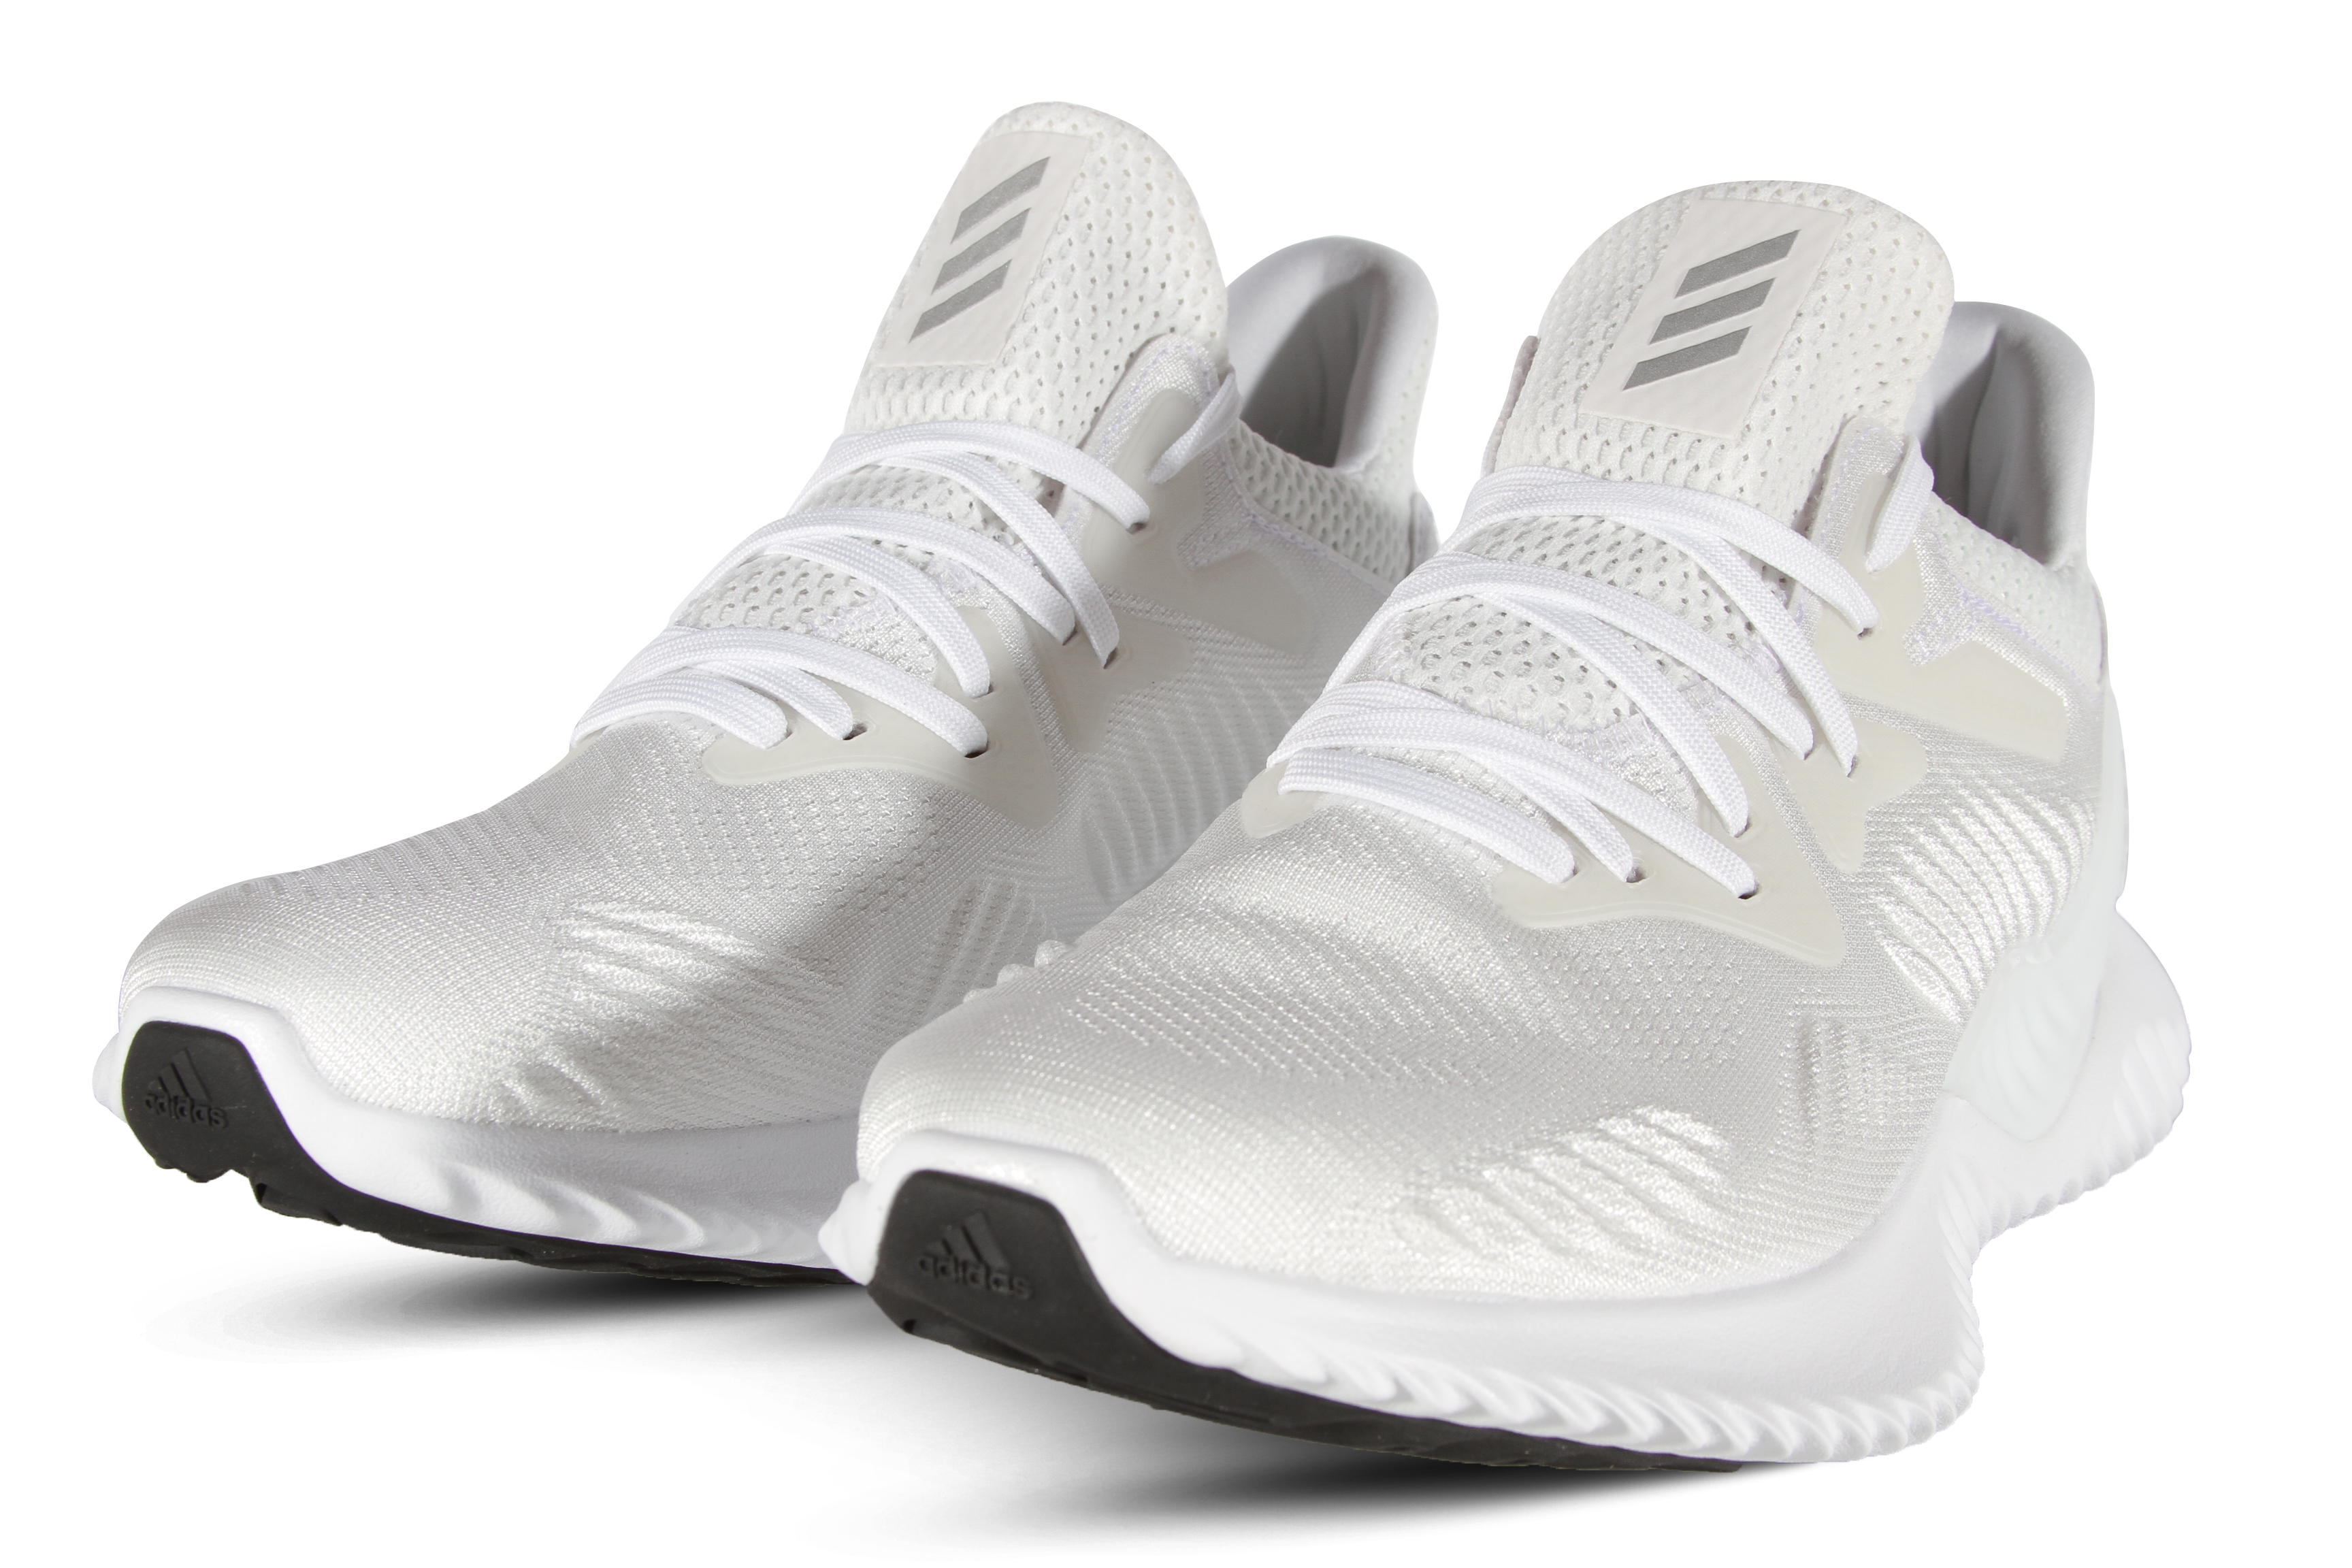 87f13d3678478a Adidas Alphabounce Beyond Women s Running Shoes AC8634